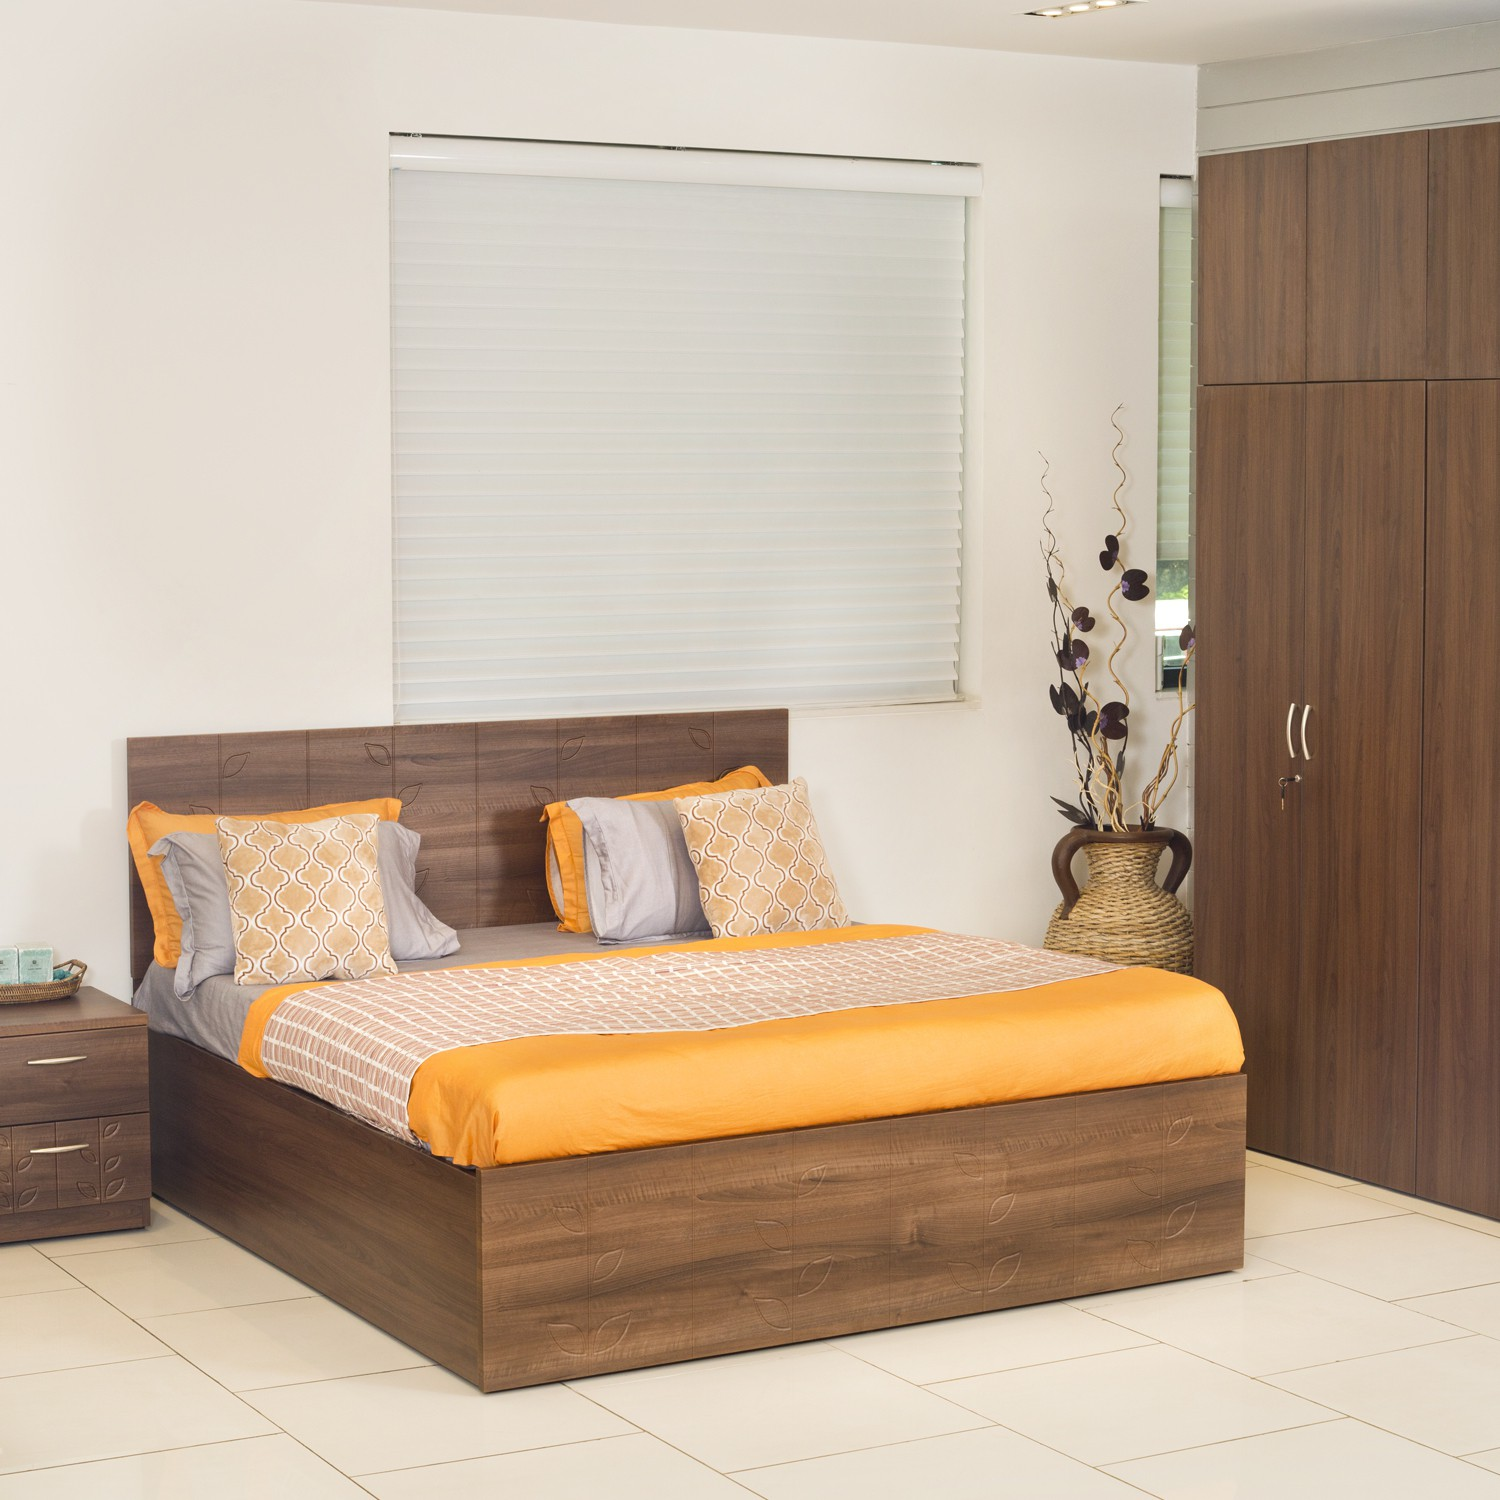 Godrej Interio Engineered Wood Bed + Side Table + Wardrobe(Finish Color - Cincinnati Walnut)